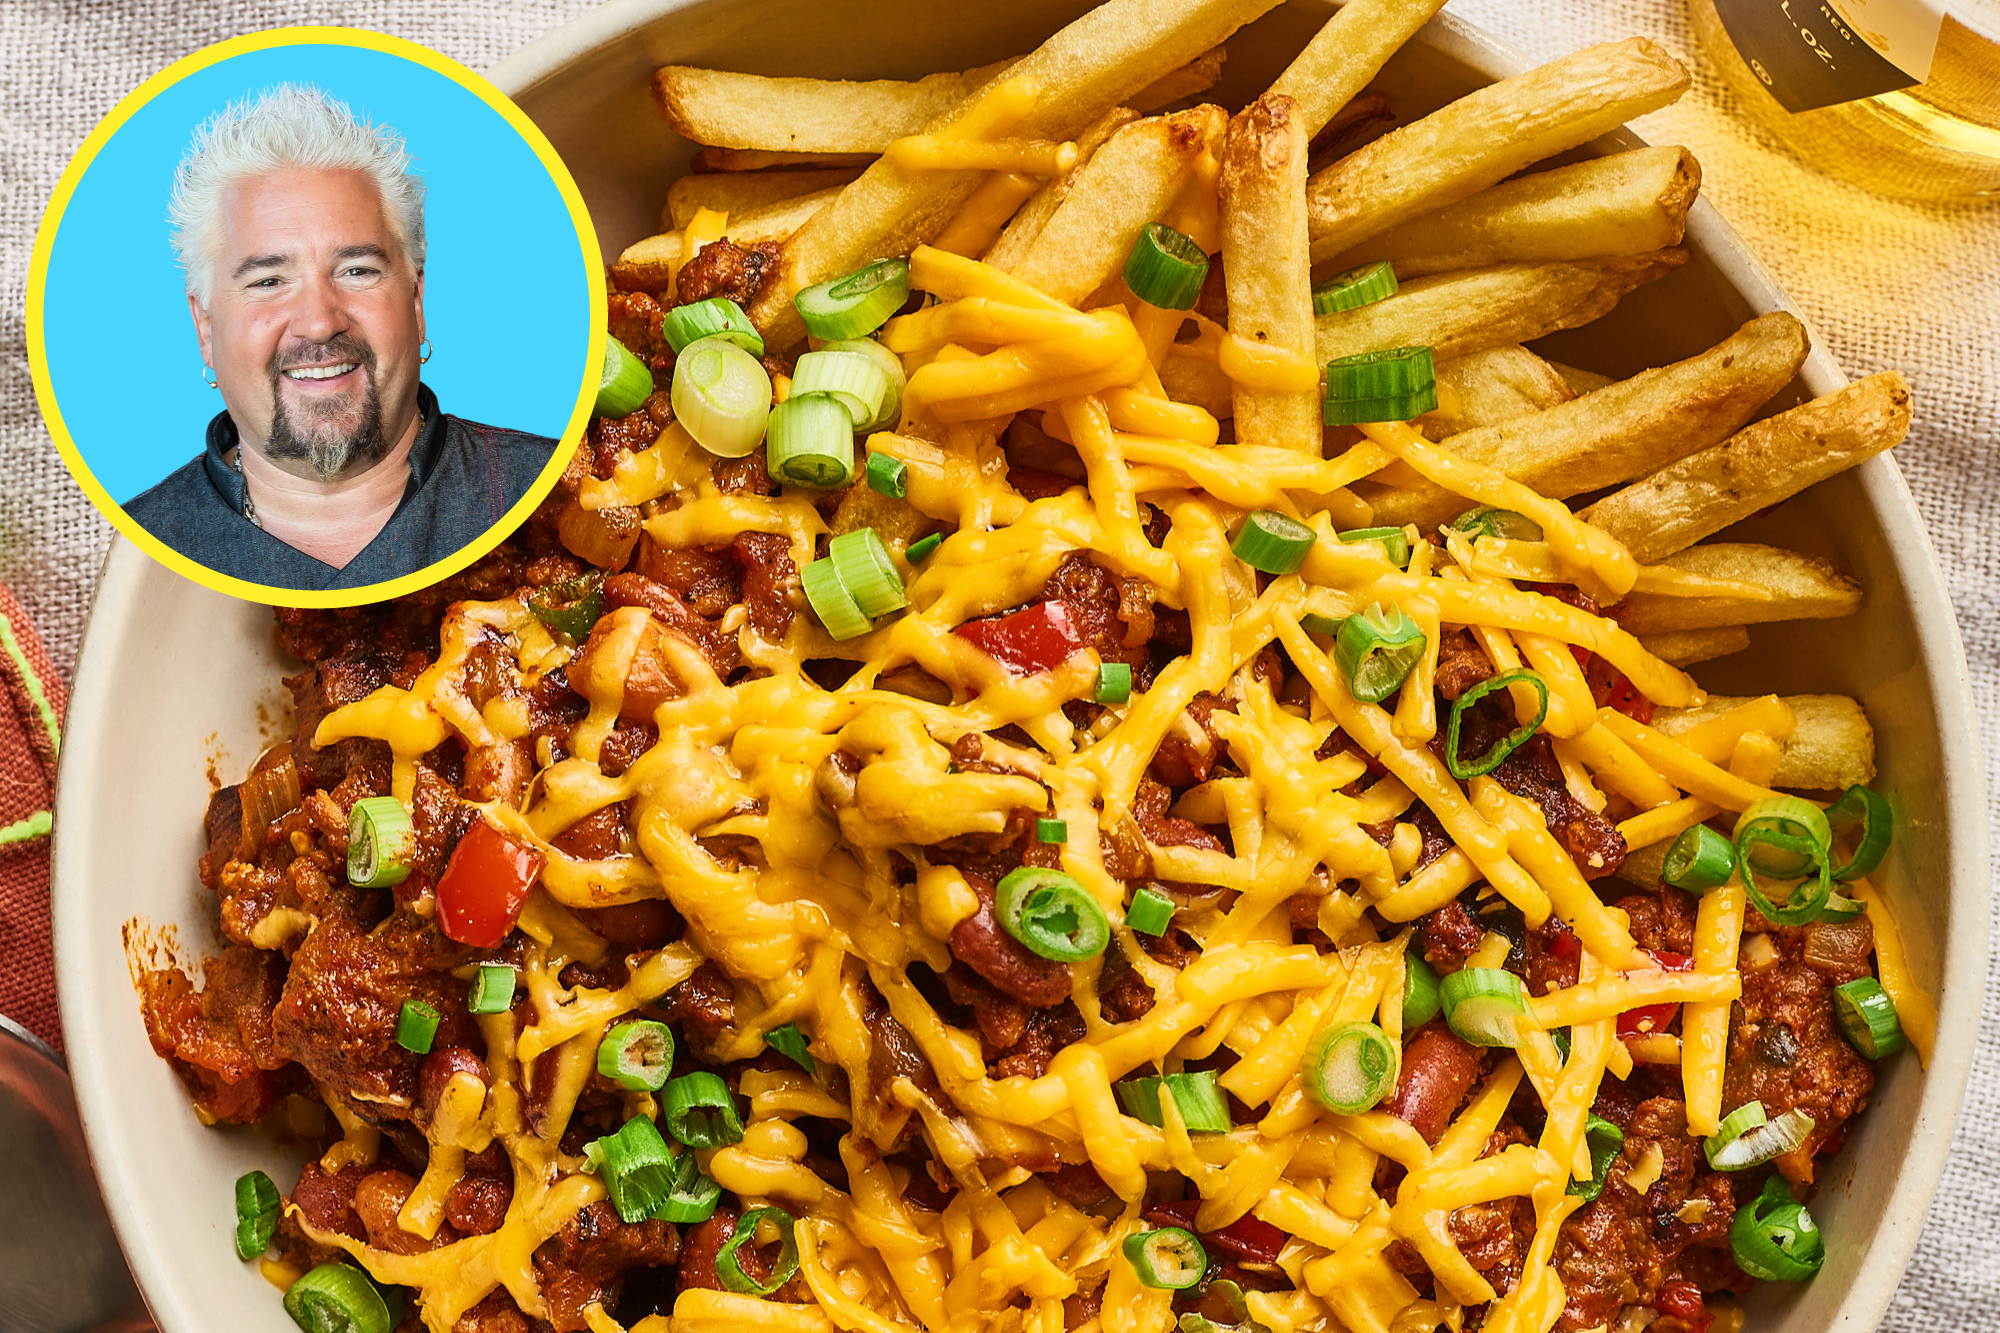 Guy Fieri's Spicy Chili Recipe Packs a Serious Punch